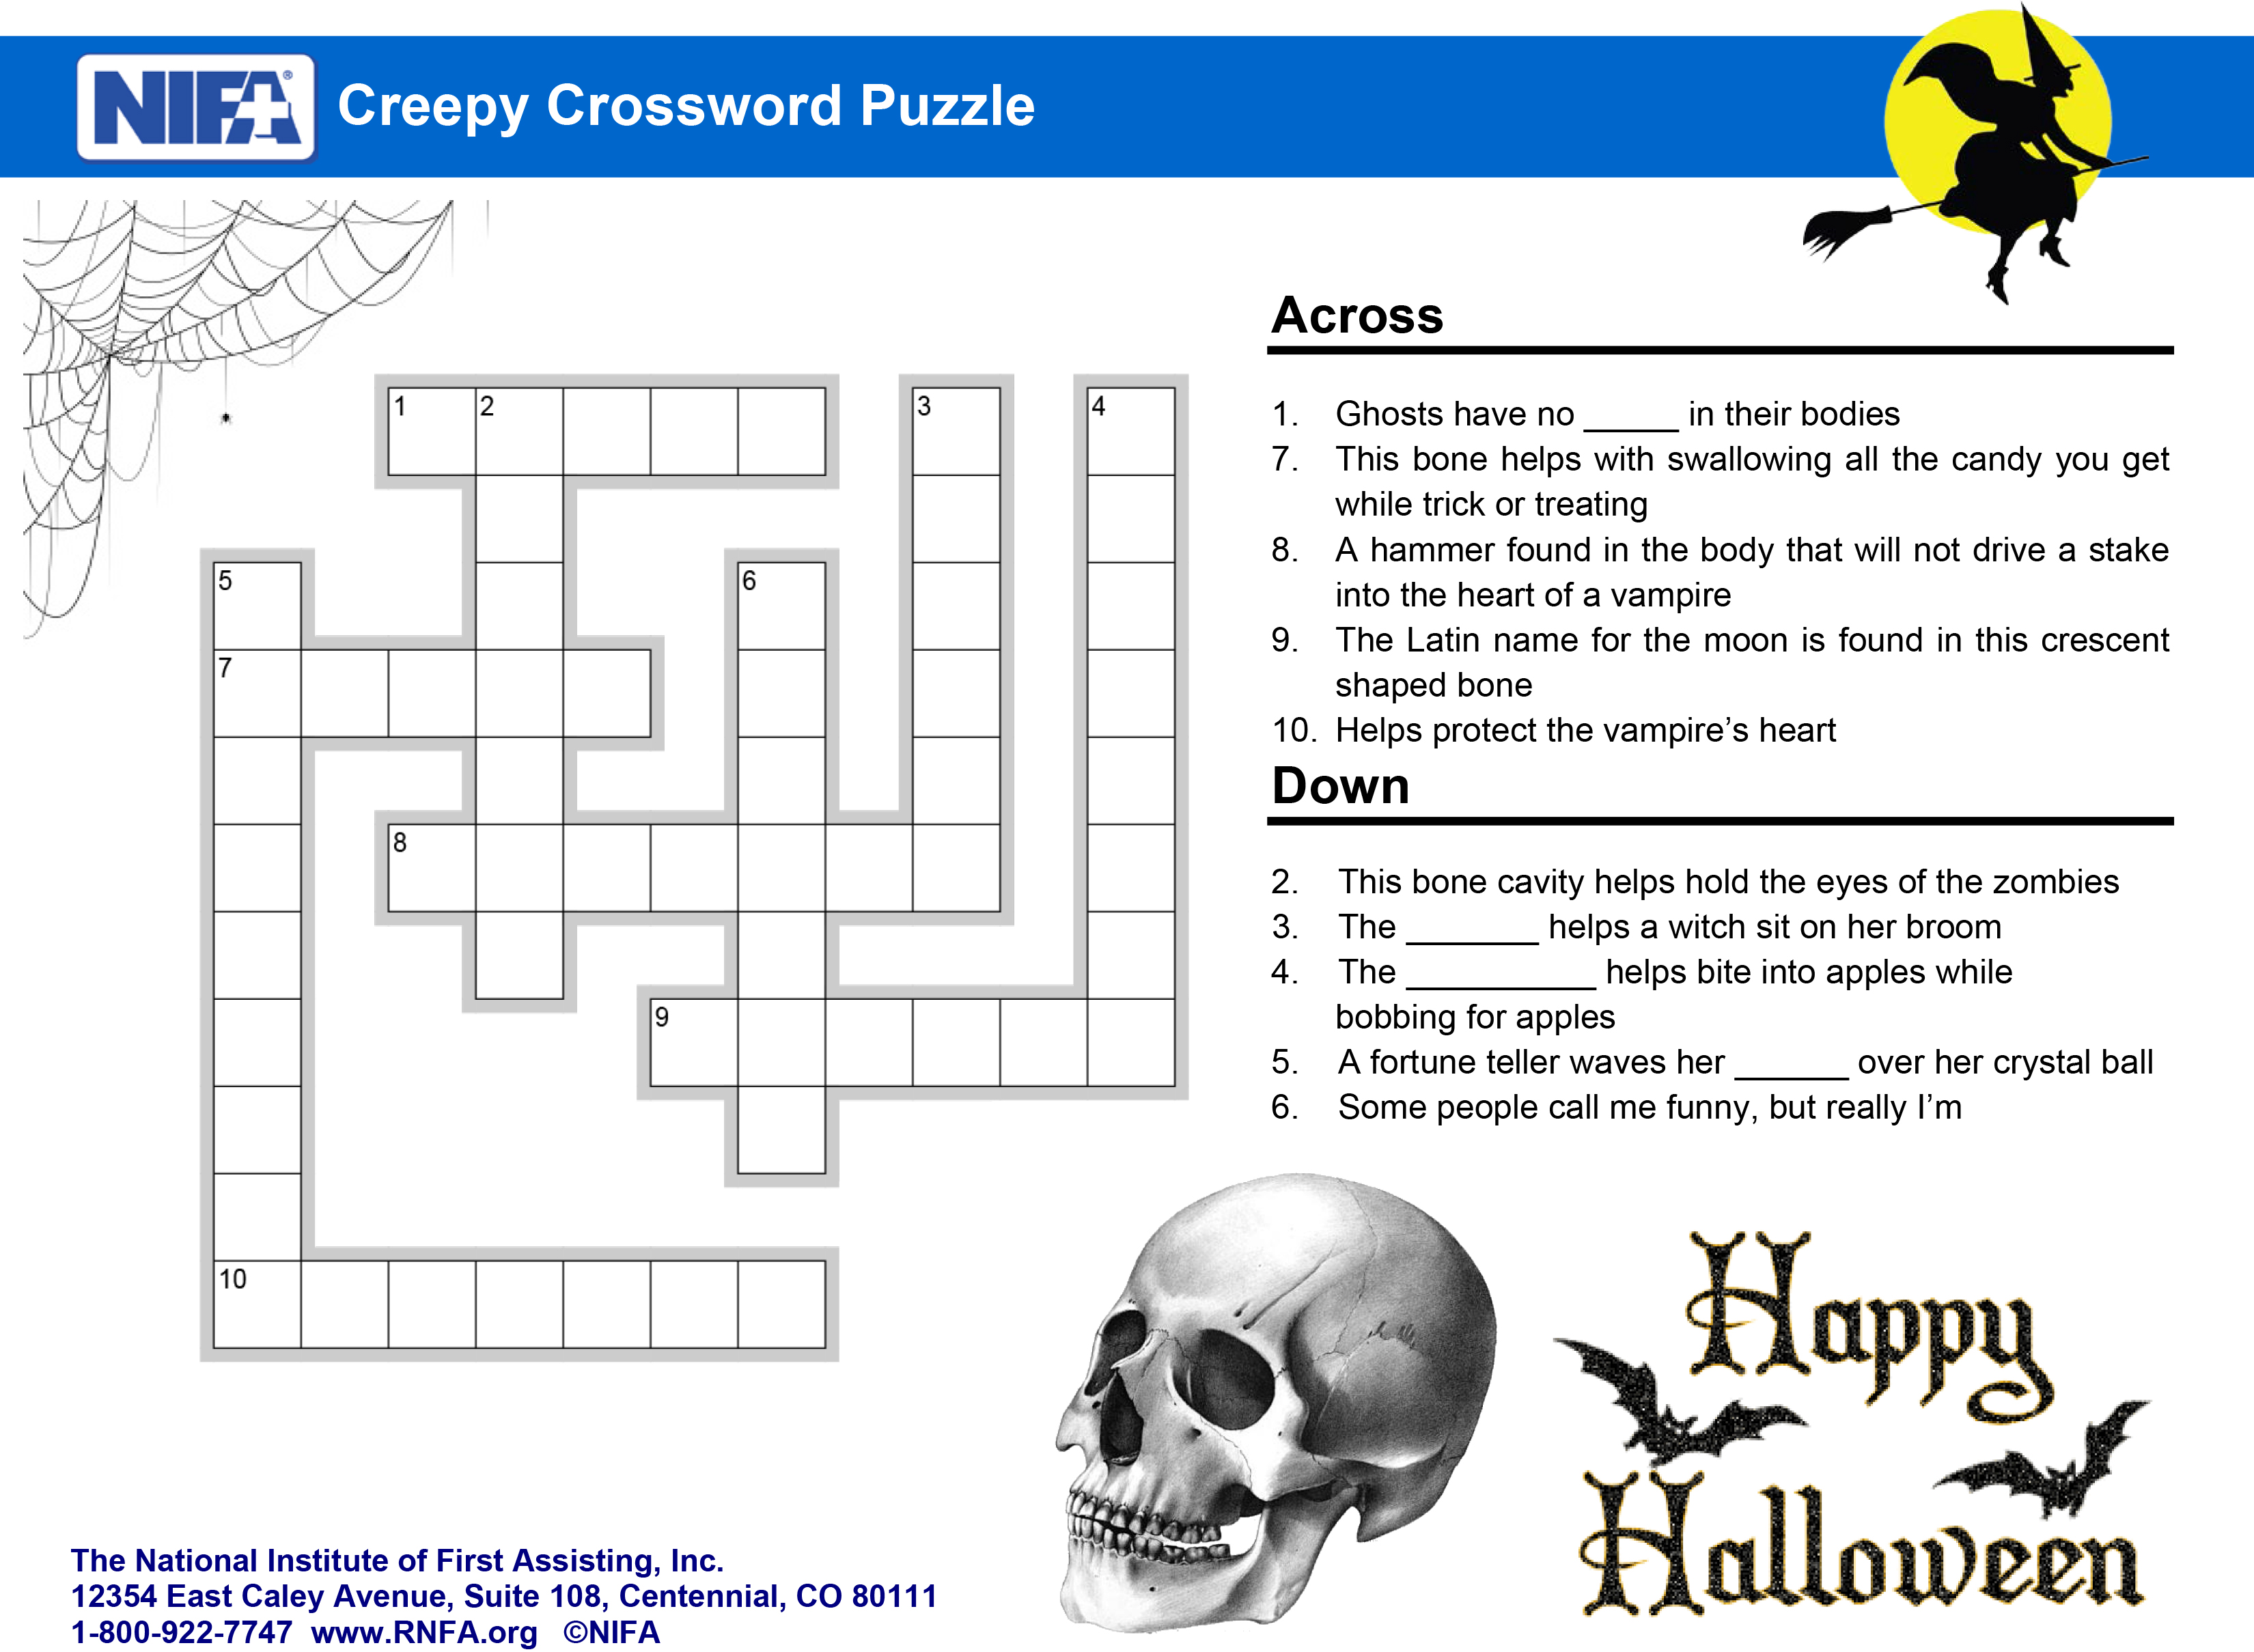 Creepy Crossword Clues - October 2016 - RNFA